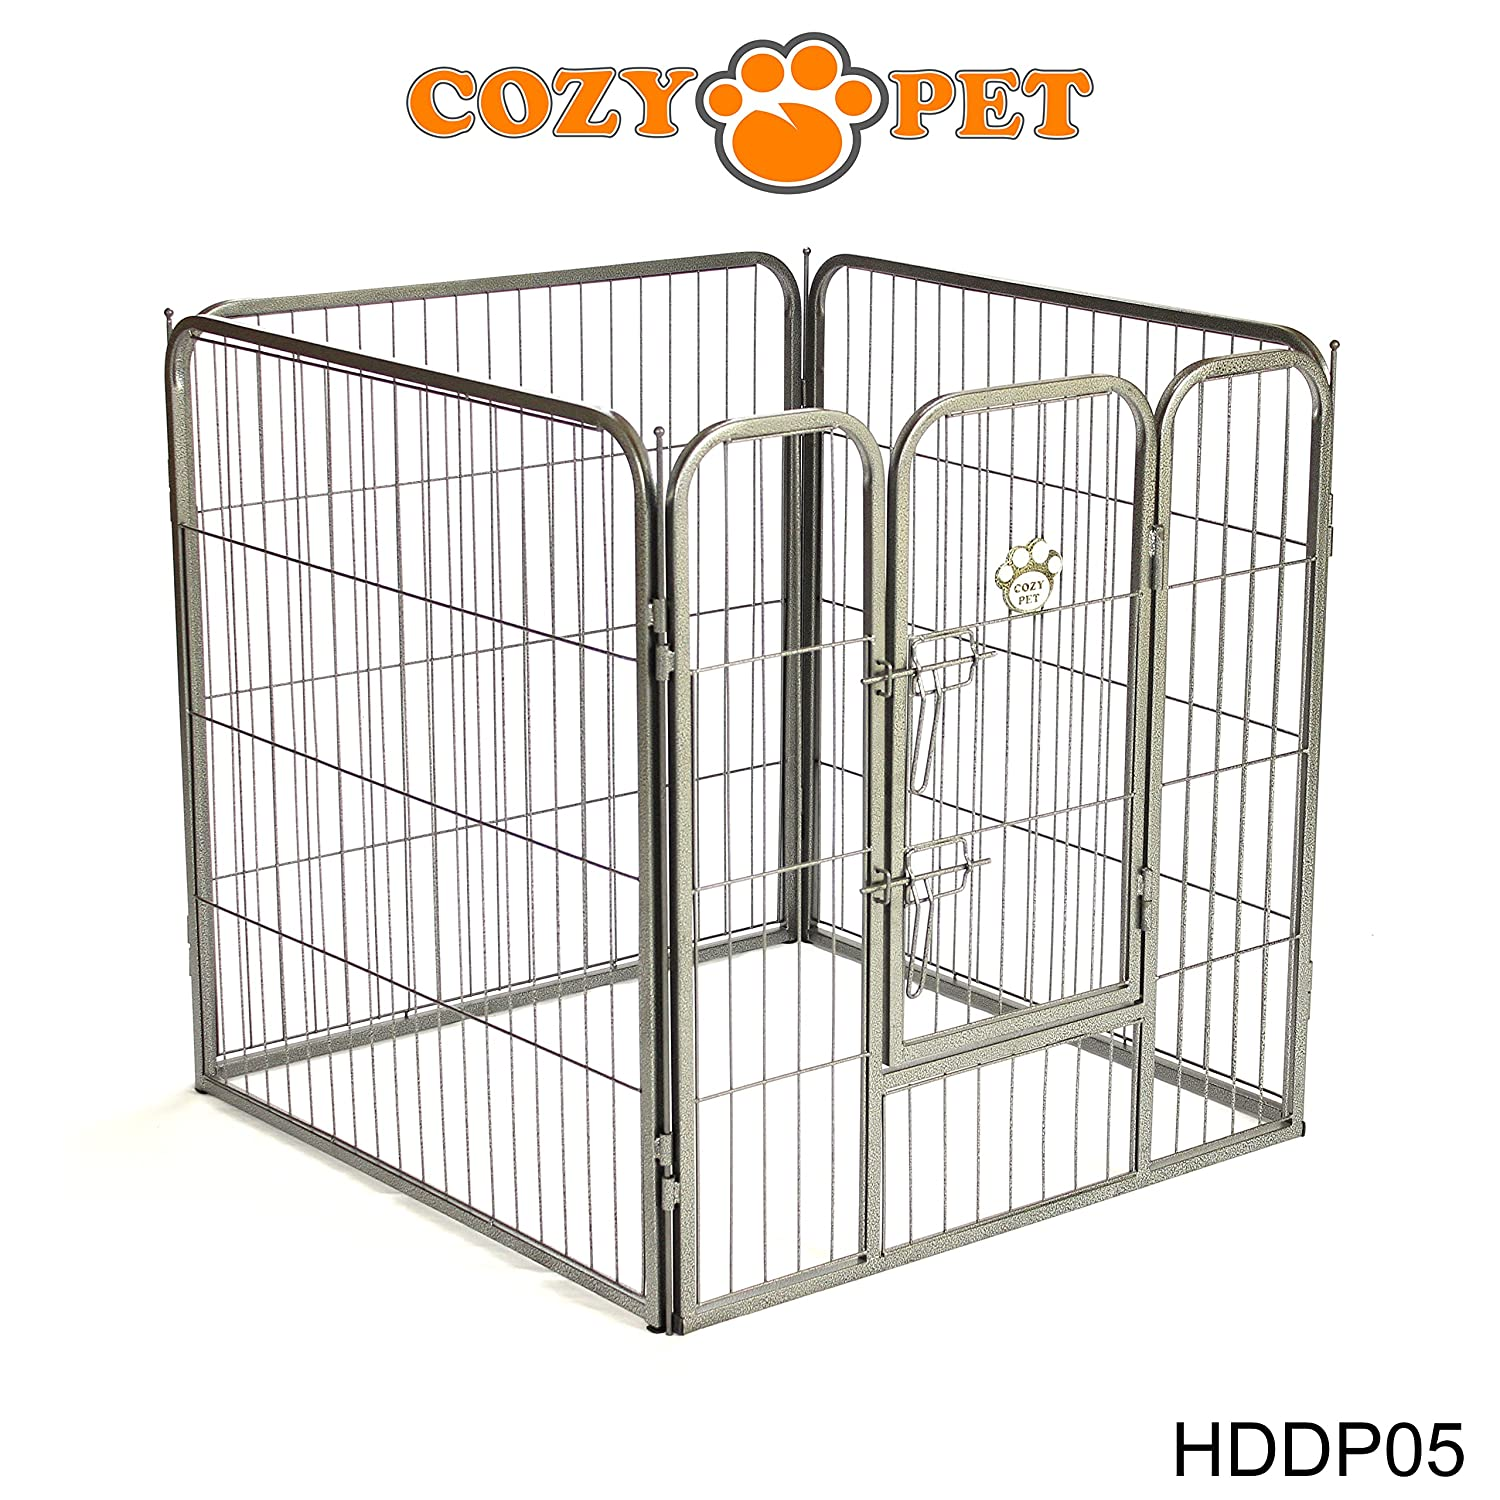 70off cozy pet heavy duty play pen for dogs puppies rabbits guinea pigs puppy playpen whelping pen dog cage puppy crate run 9 sizes available hddp04